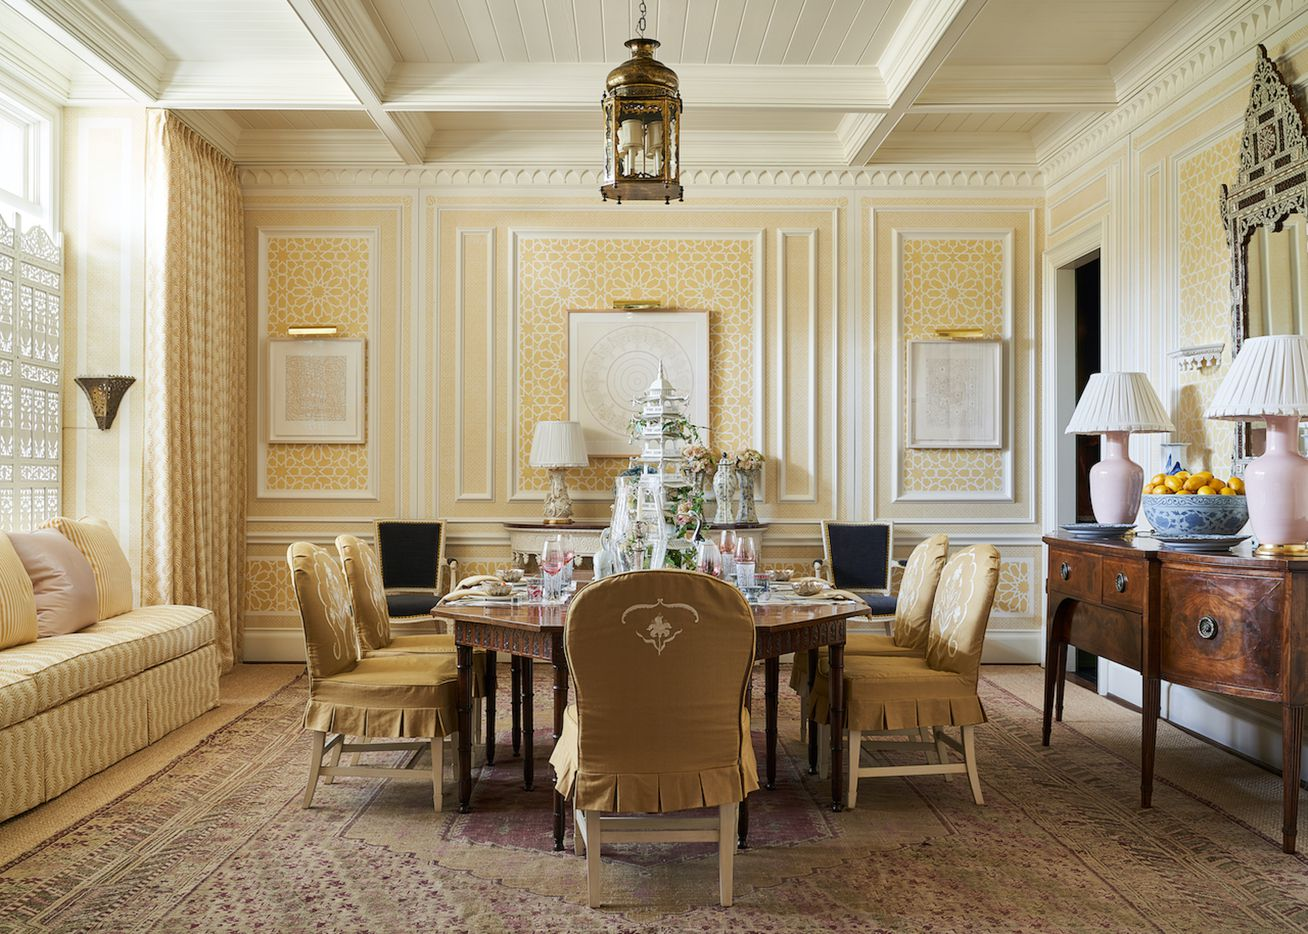 The dining room at the Kips Bay Decorator Show House Dallas. This room was designed by Cathy Kincaid.